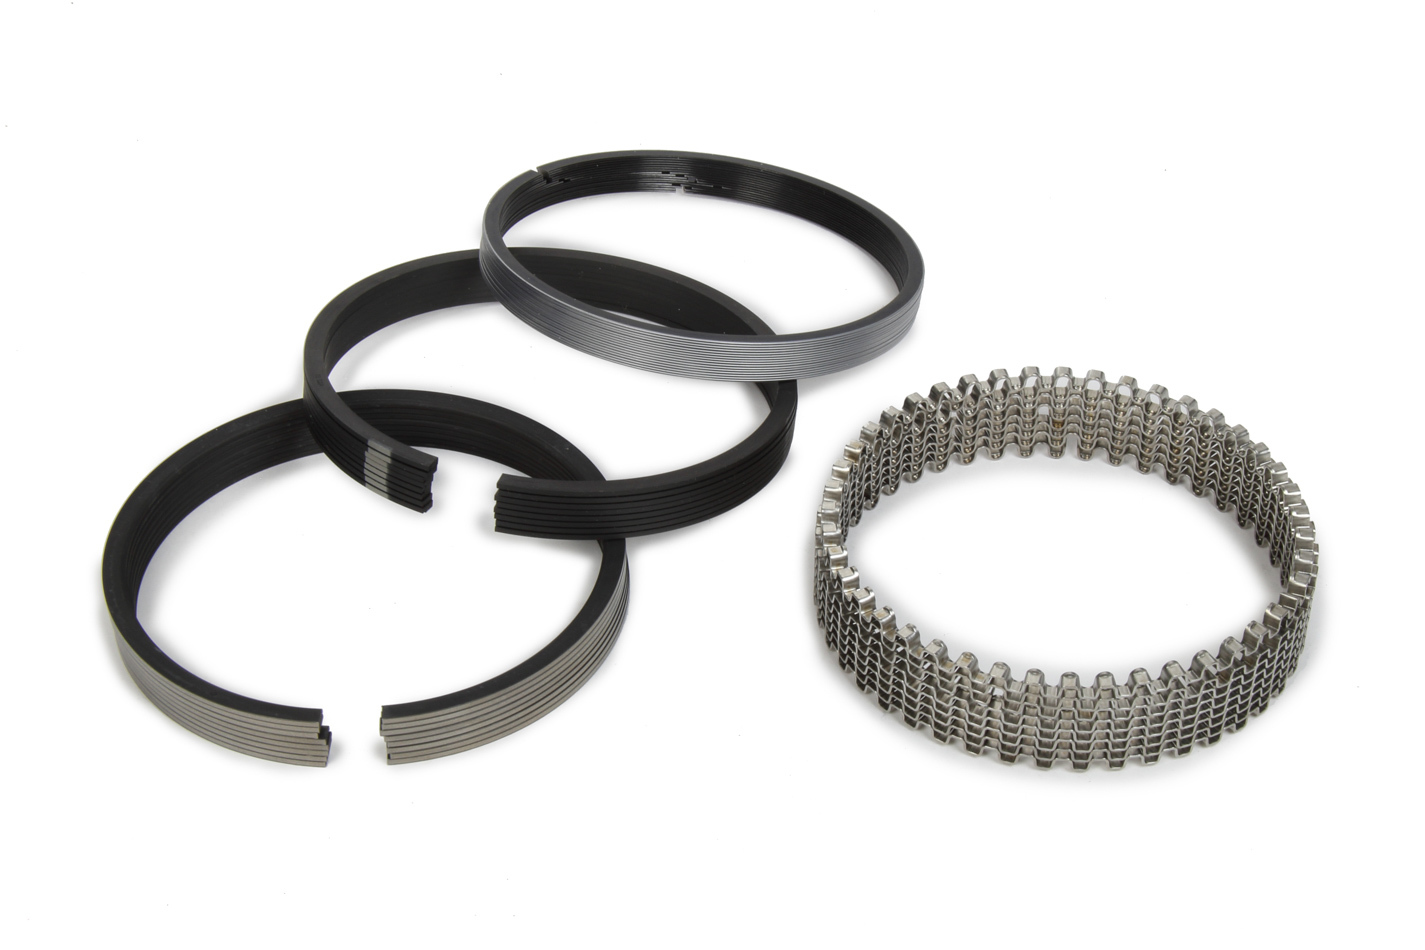 Michigan 77 315-0036.030 Piston Rings, 4.030 in Bore, 1/16 x 1/16 x 3/16 in Thick, Standard Tension, Plasma Moly, 8 Cylinder, Kit